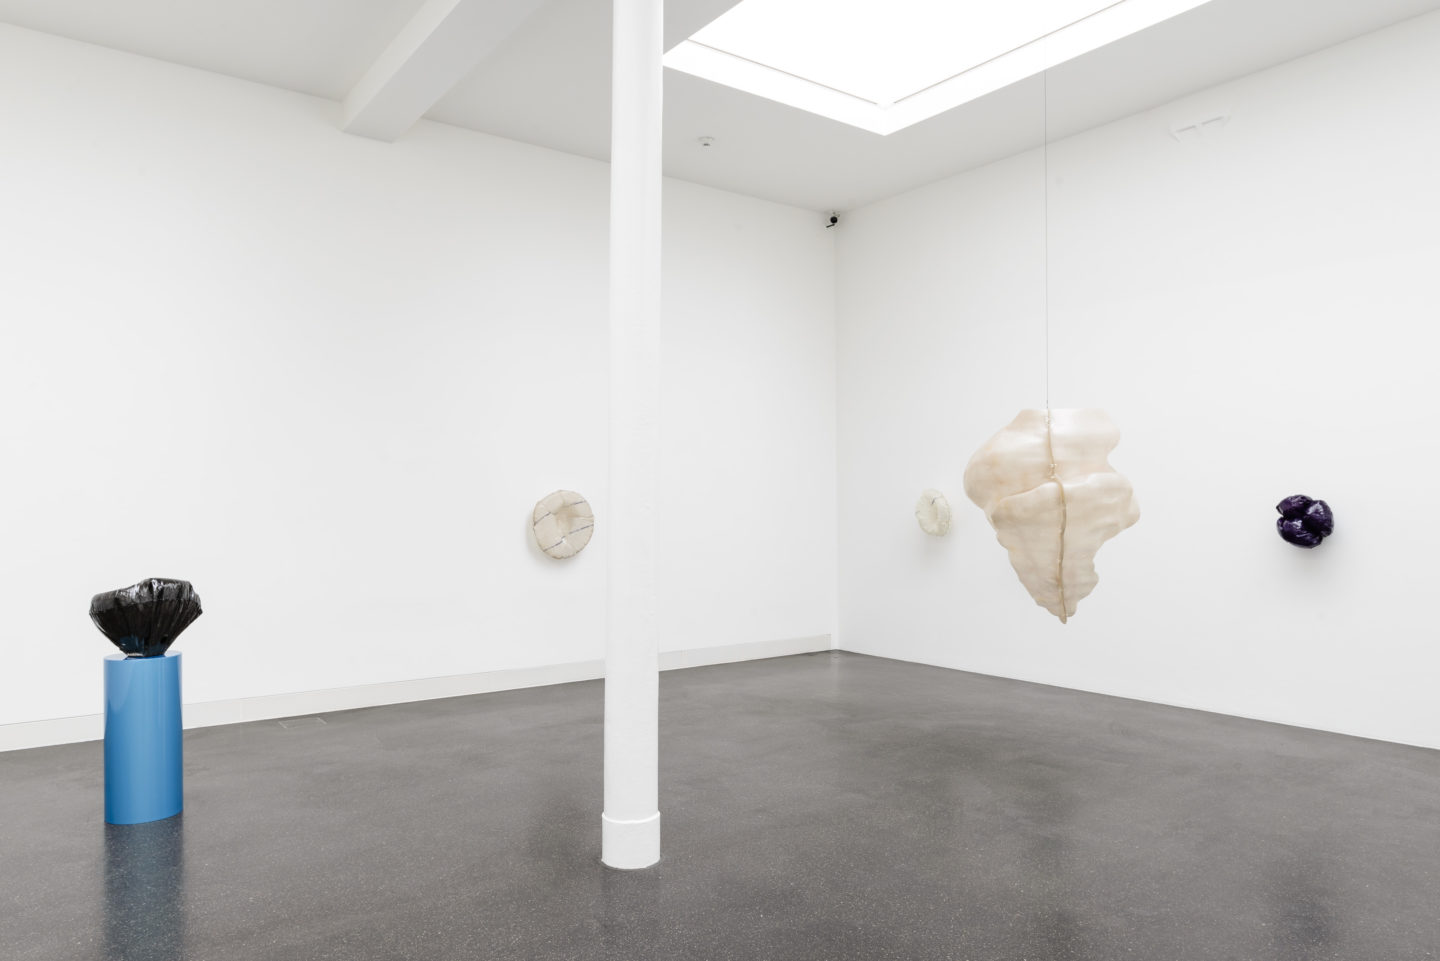 "Exhibition View Florian Germann ""Ringer"" at Galerie Gregor Staiger / Photo and Courtesy: Galerie Gregor Staiger, Zürich"